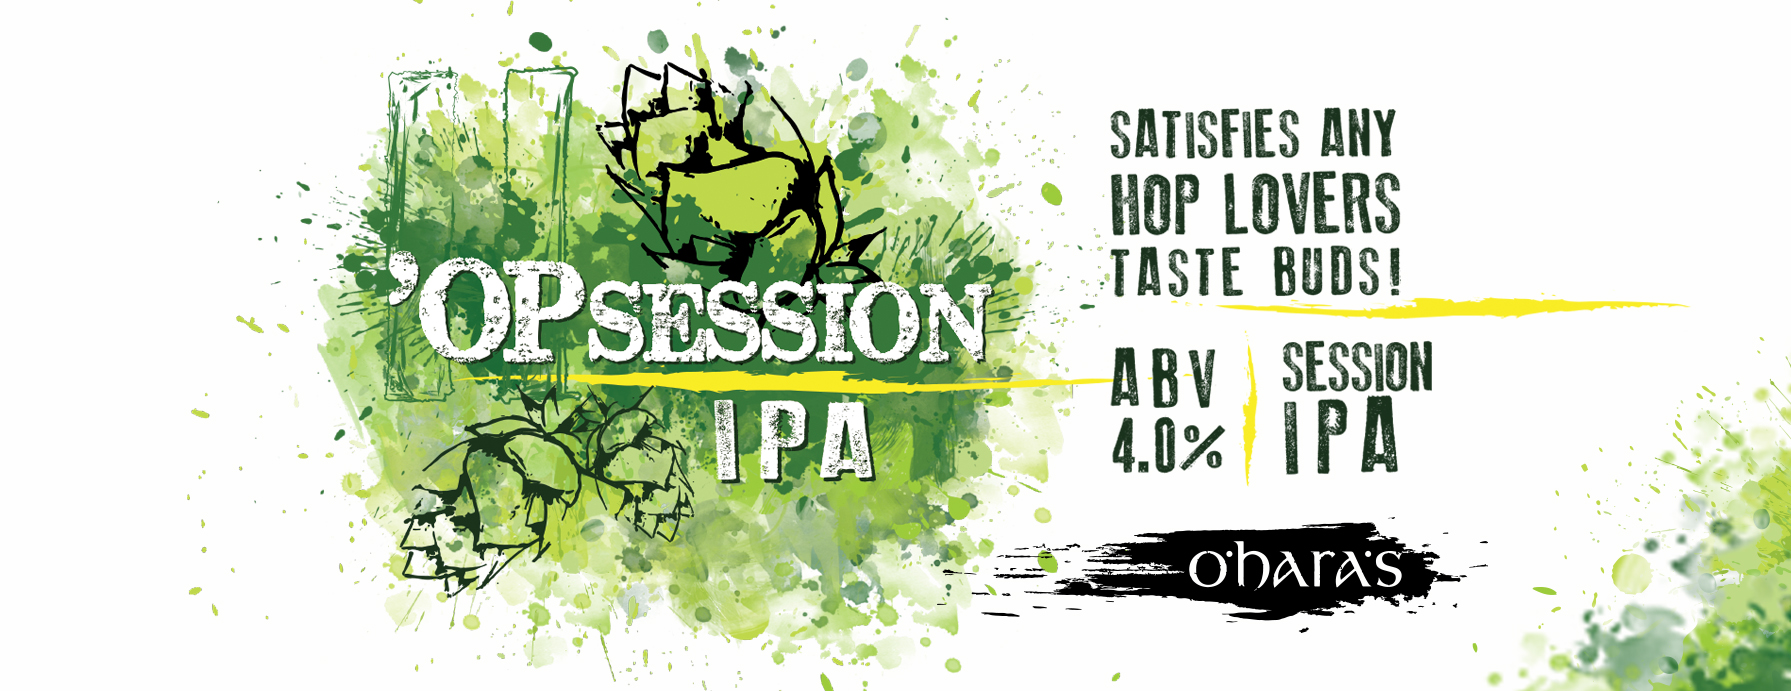 Opsession-IPA-Slider